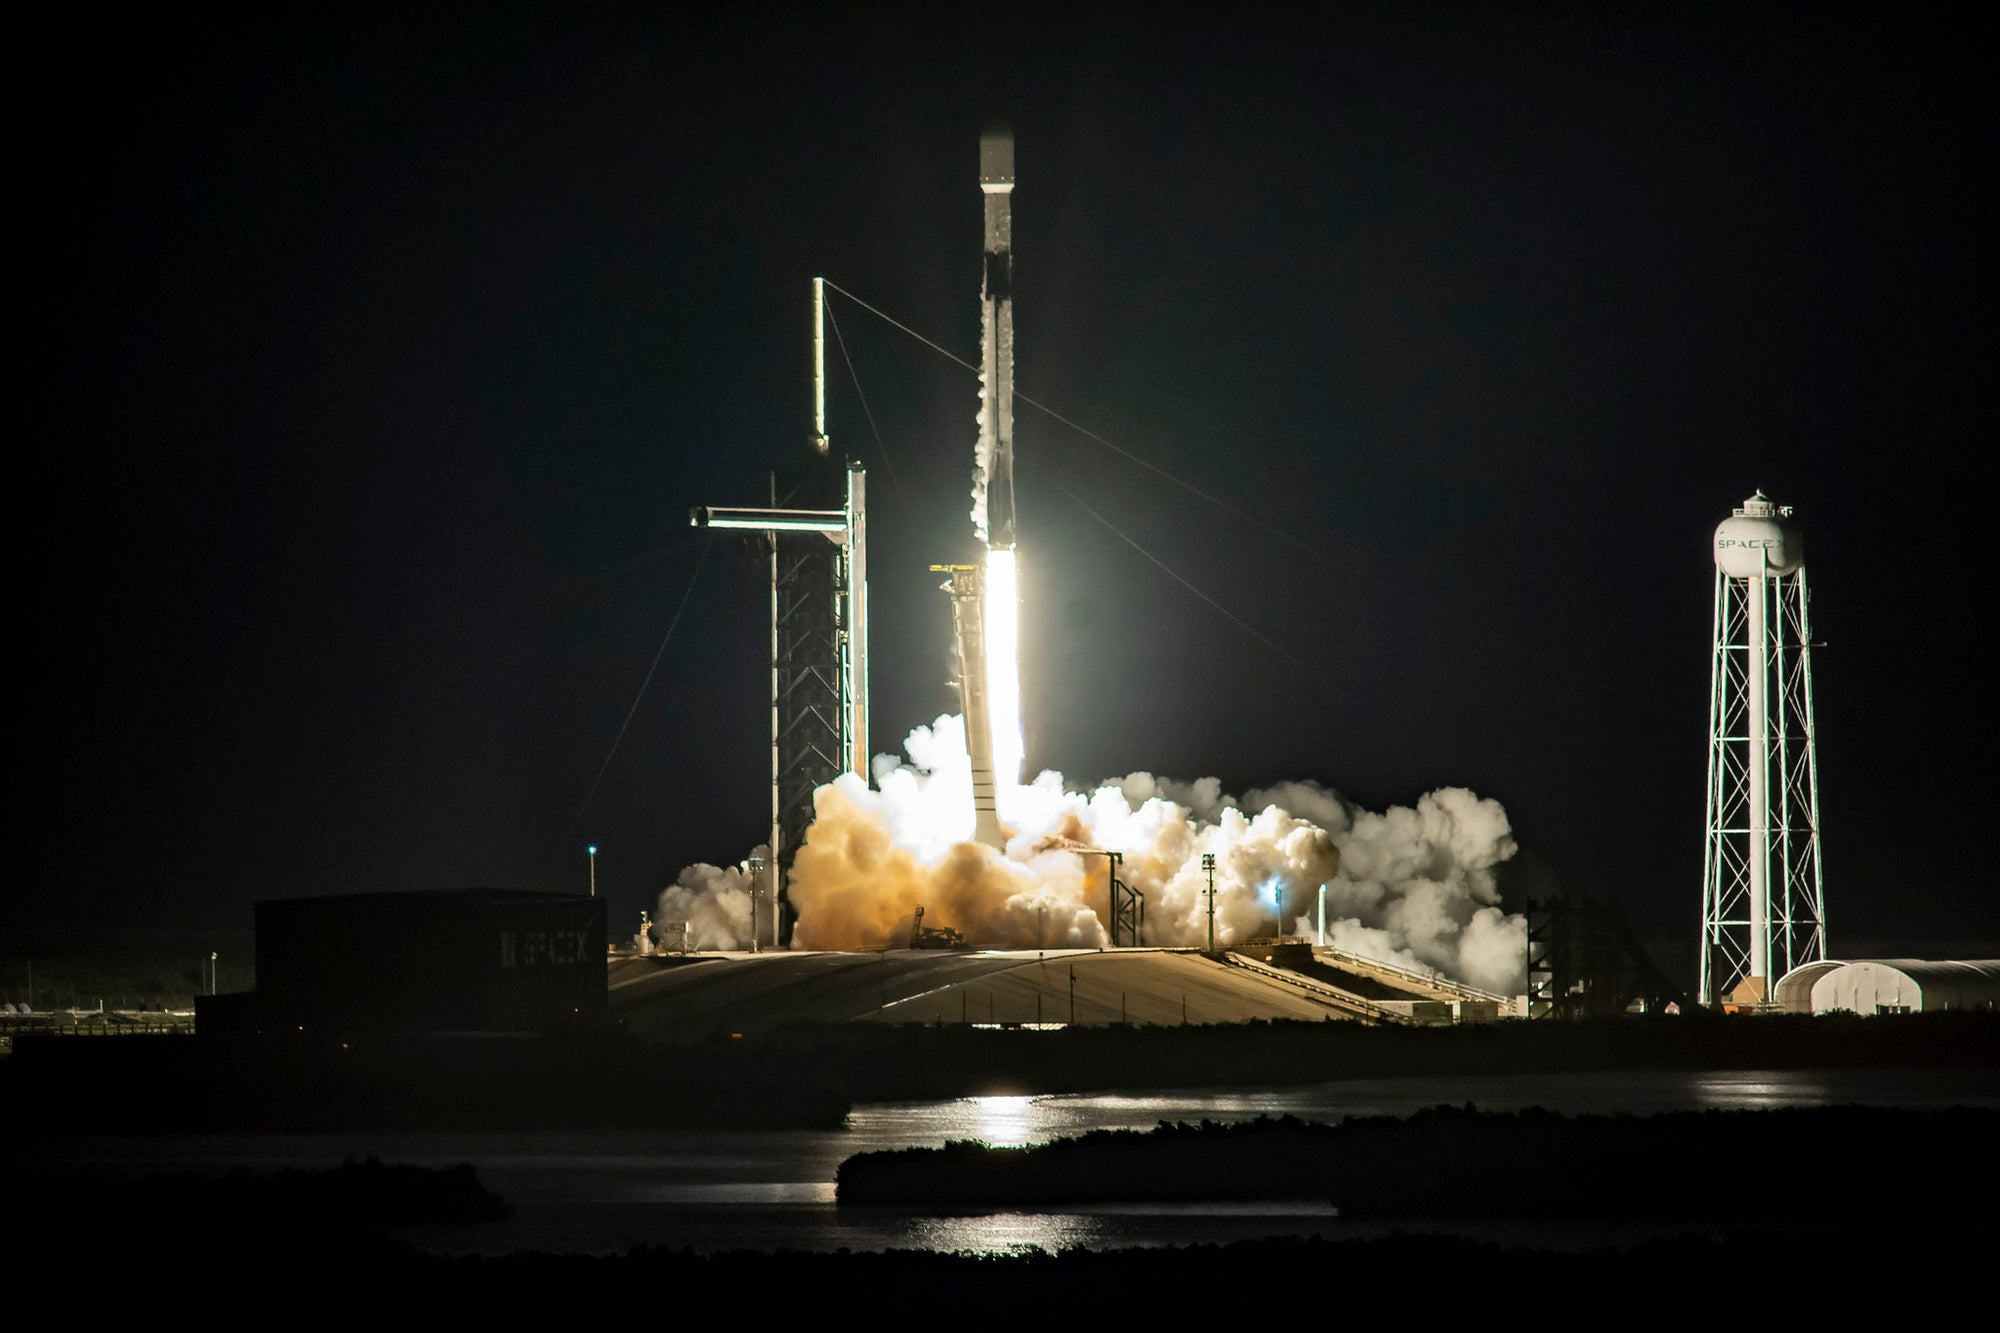 SpaceX will launch a classified payload for the U.S. National Reconnaissance Office